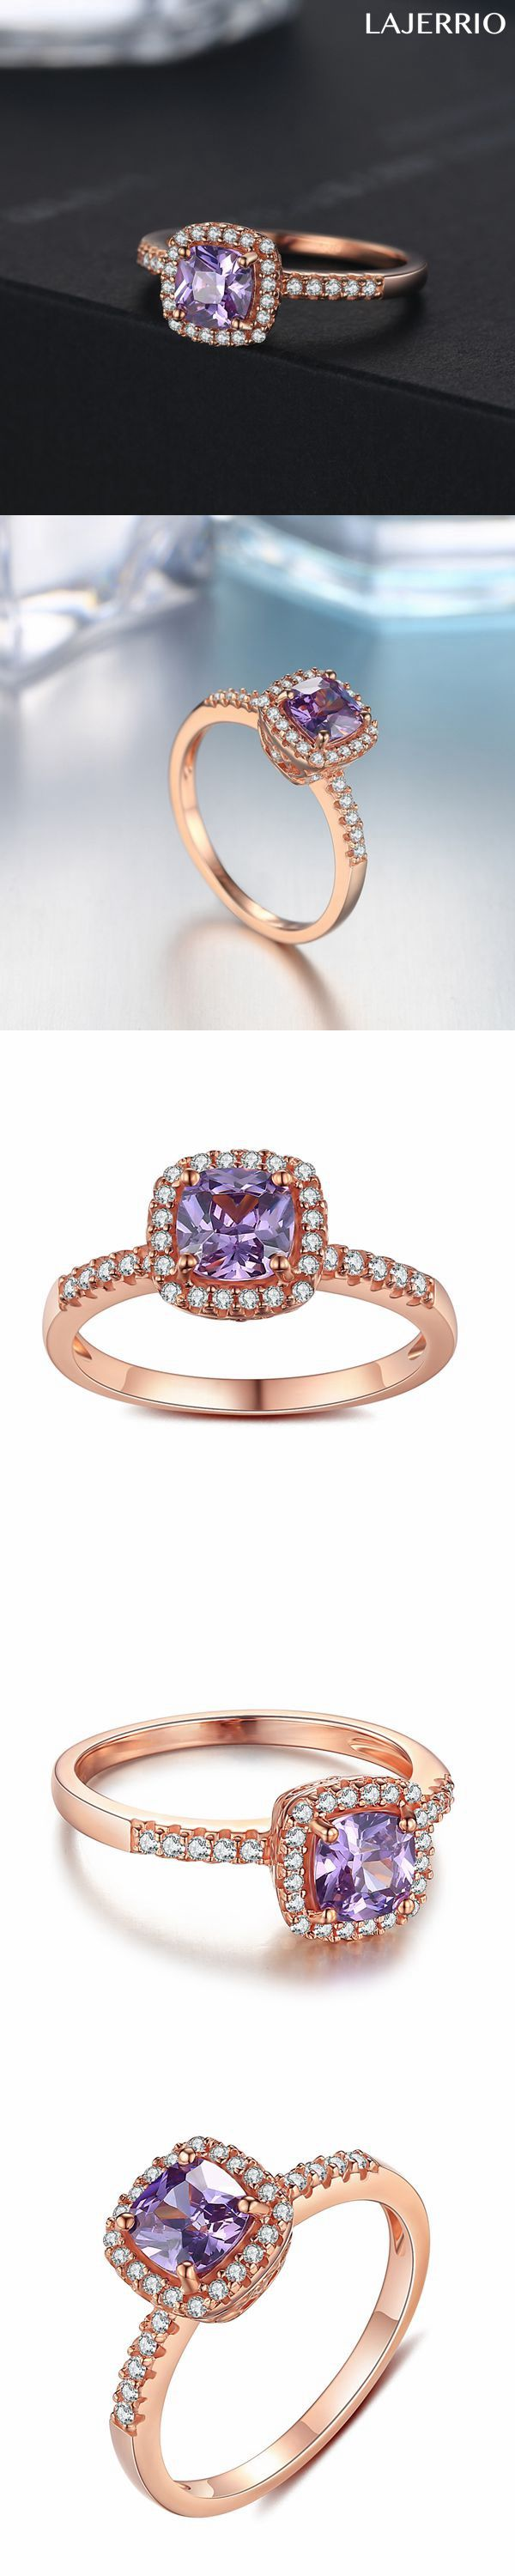 Lajerrio Jewelry Rose Gold S925 Asscher Cut Amethyst Engagement Ring